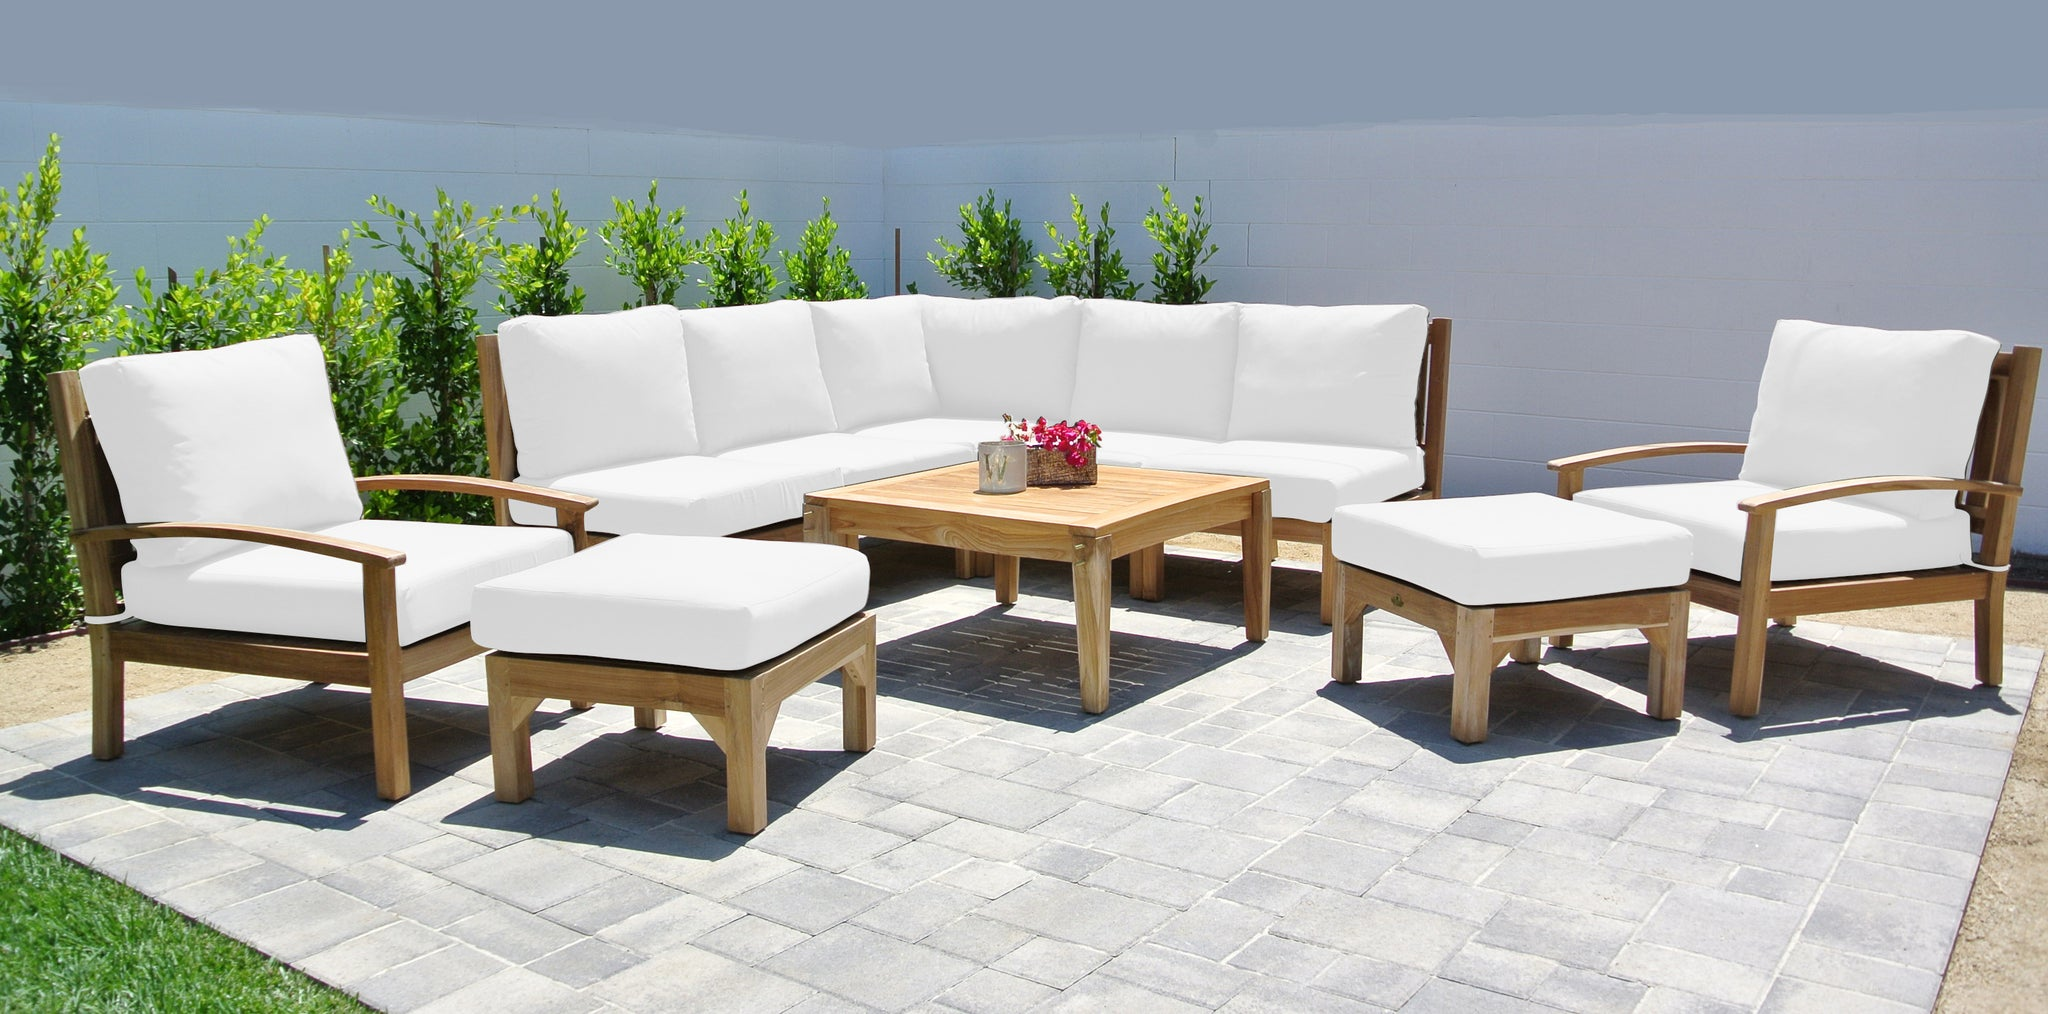 Huntington Teak Outdoor Sectional Sunbrella Patio